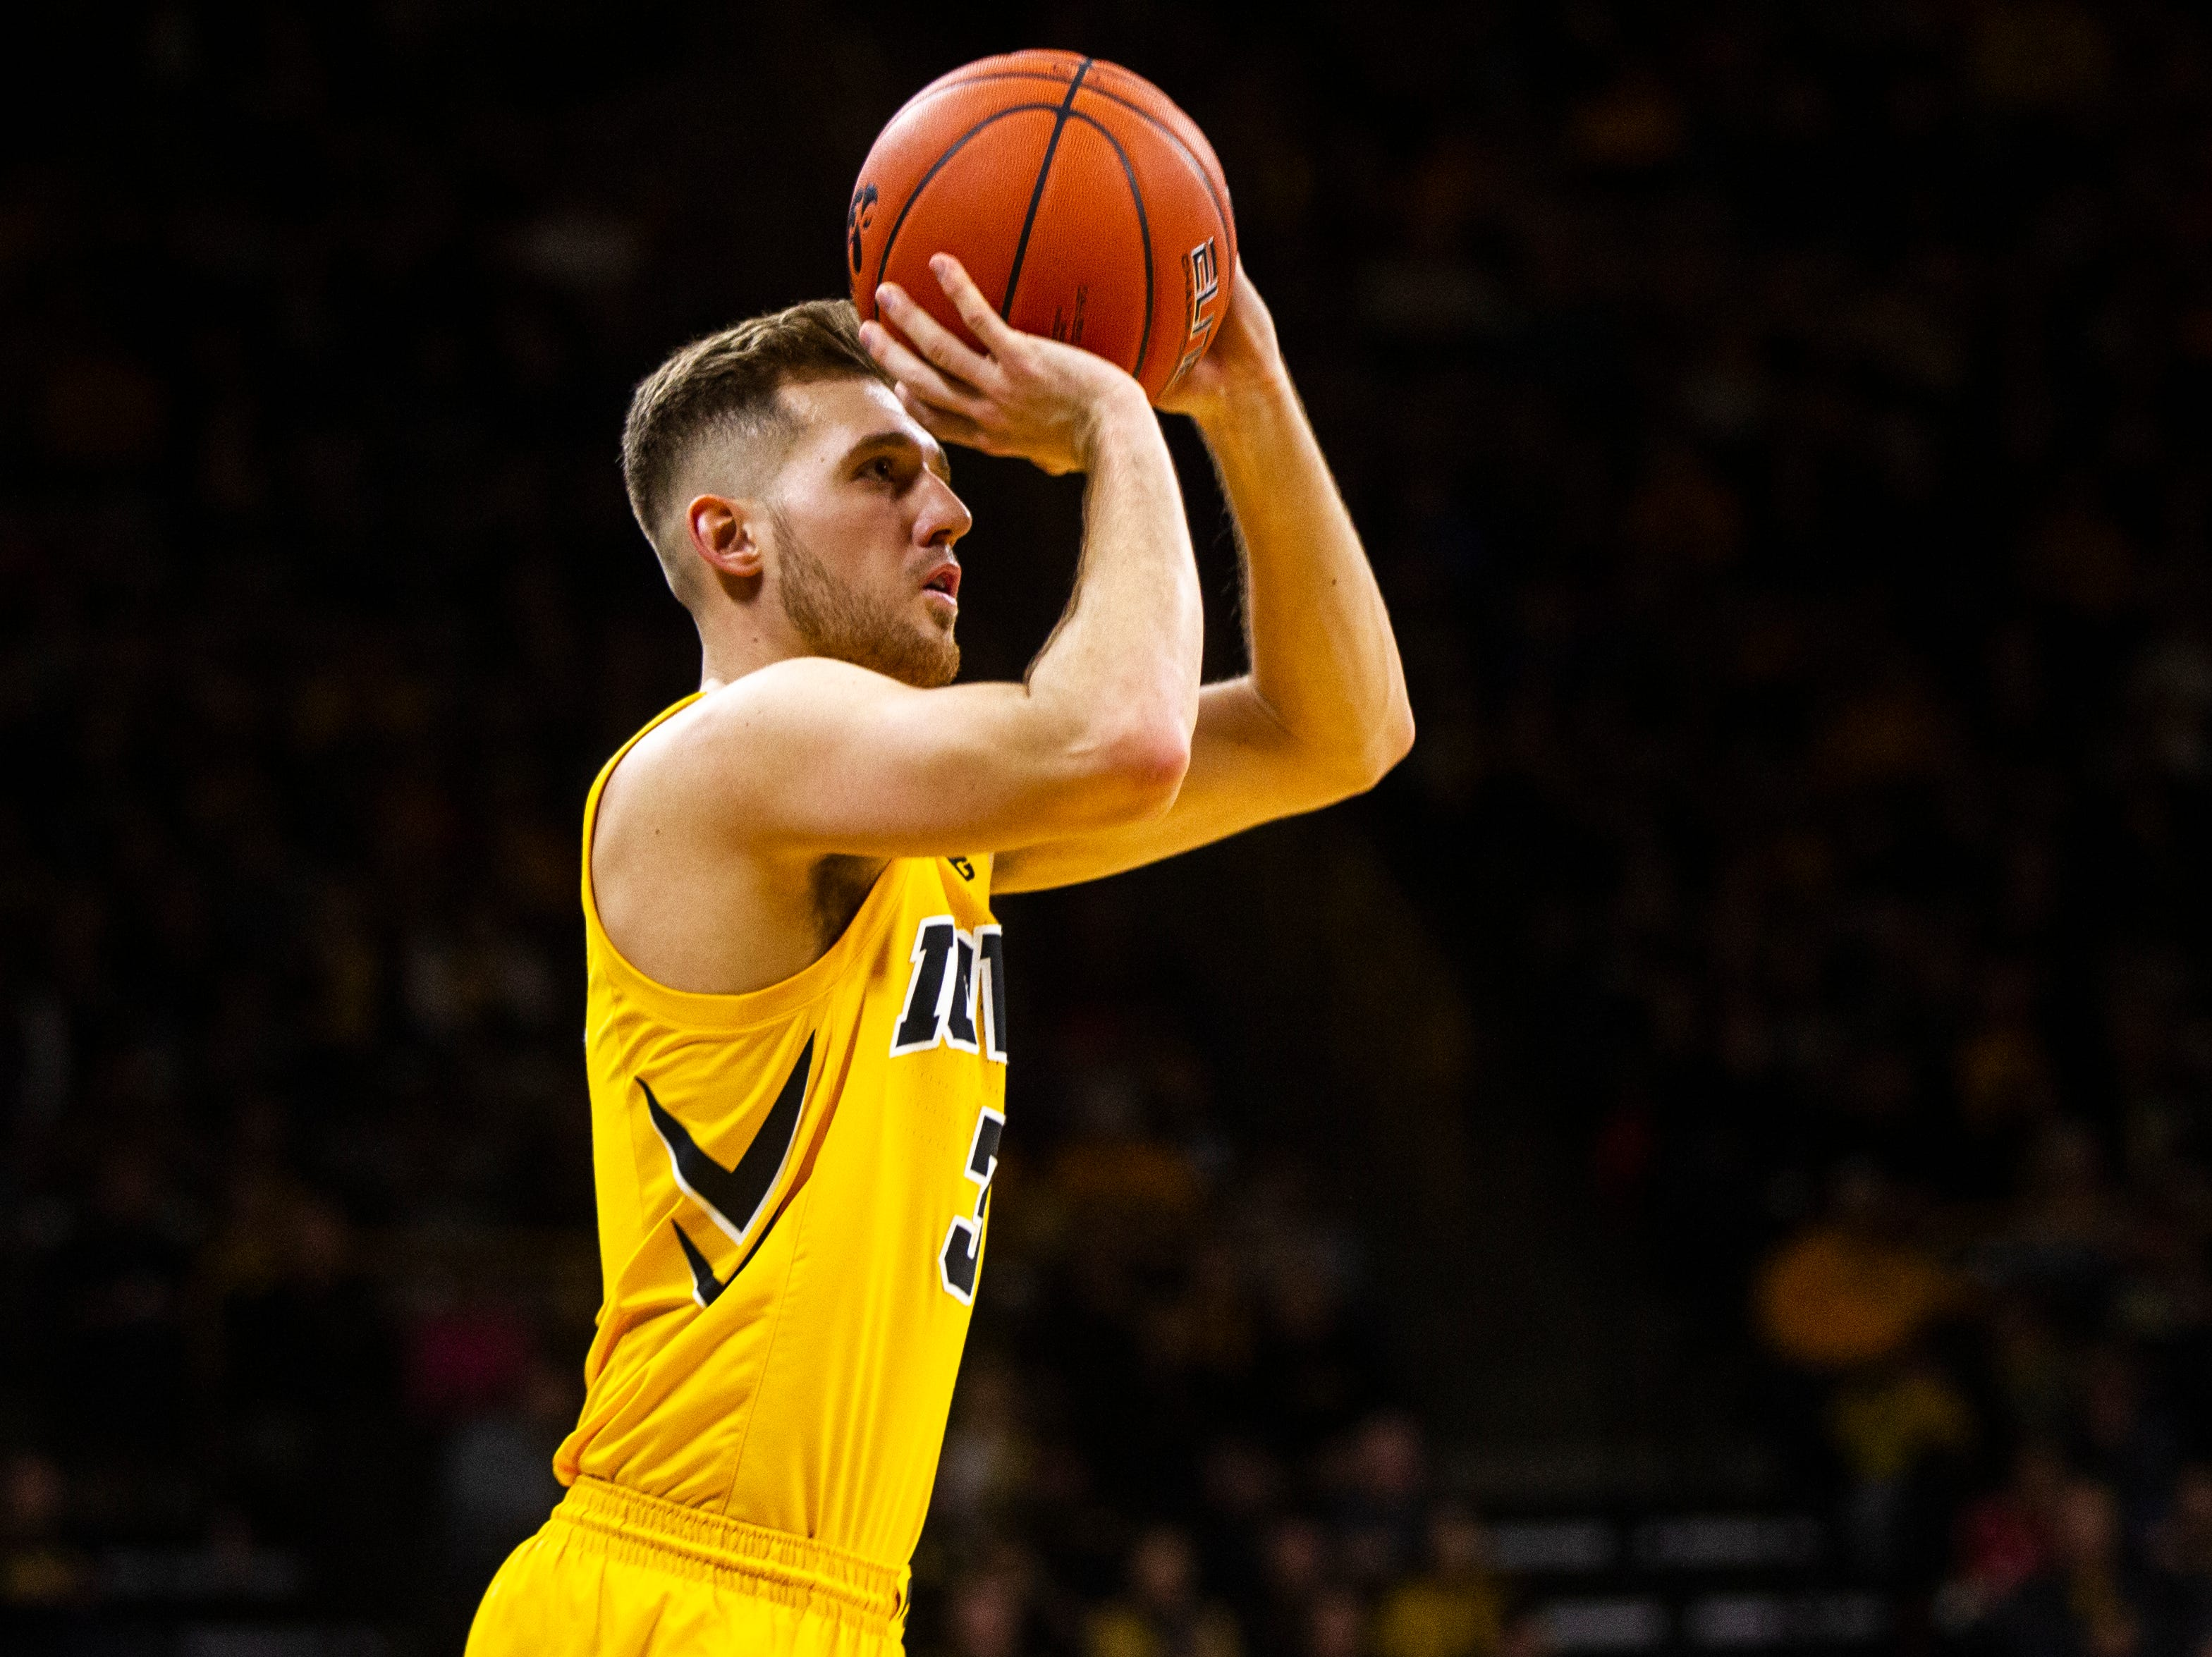 Iowa guard Jordan Bohannon (3) attempts a 3-point basket during a NCAA men's basketball game on Saturday, Dec. 22, 2018, at Carver-Hawkeye Arena in Iowa City.